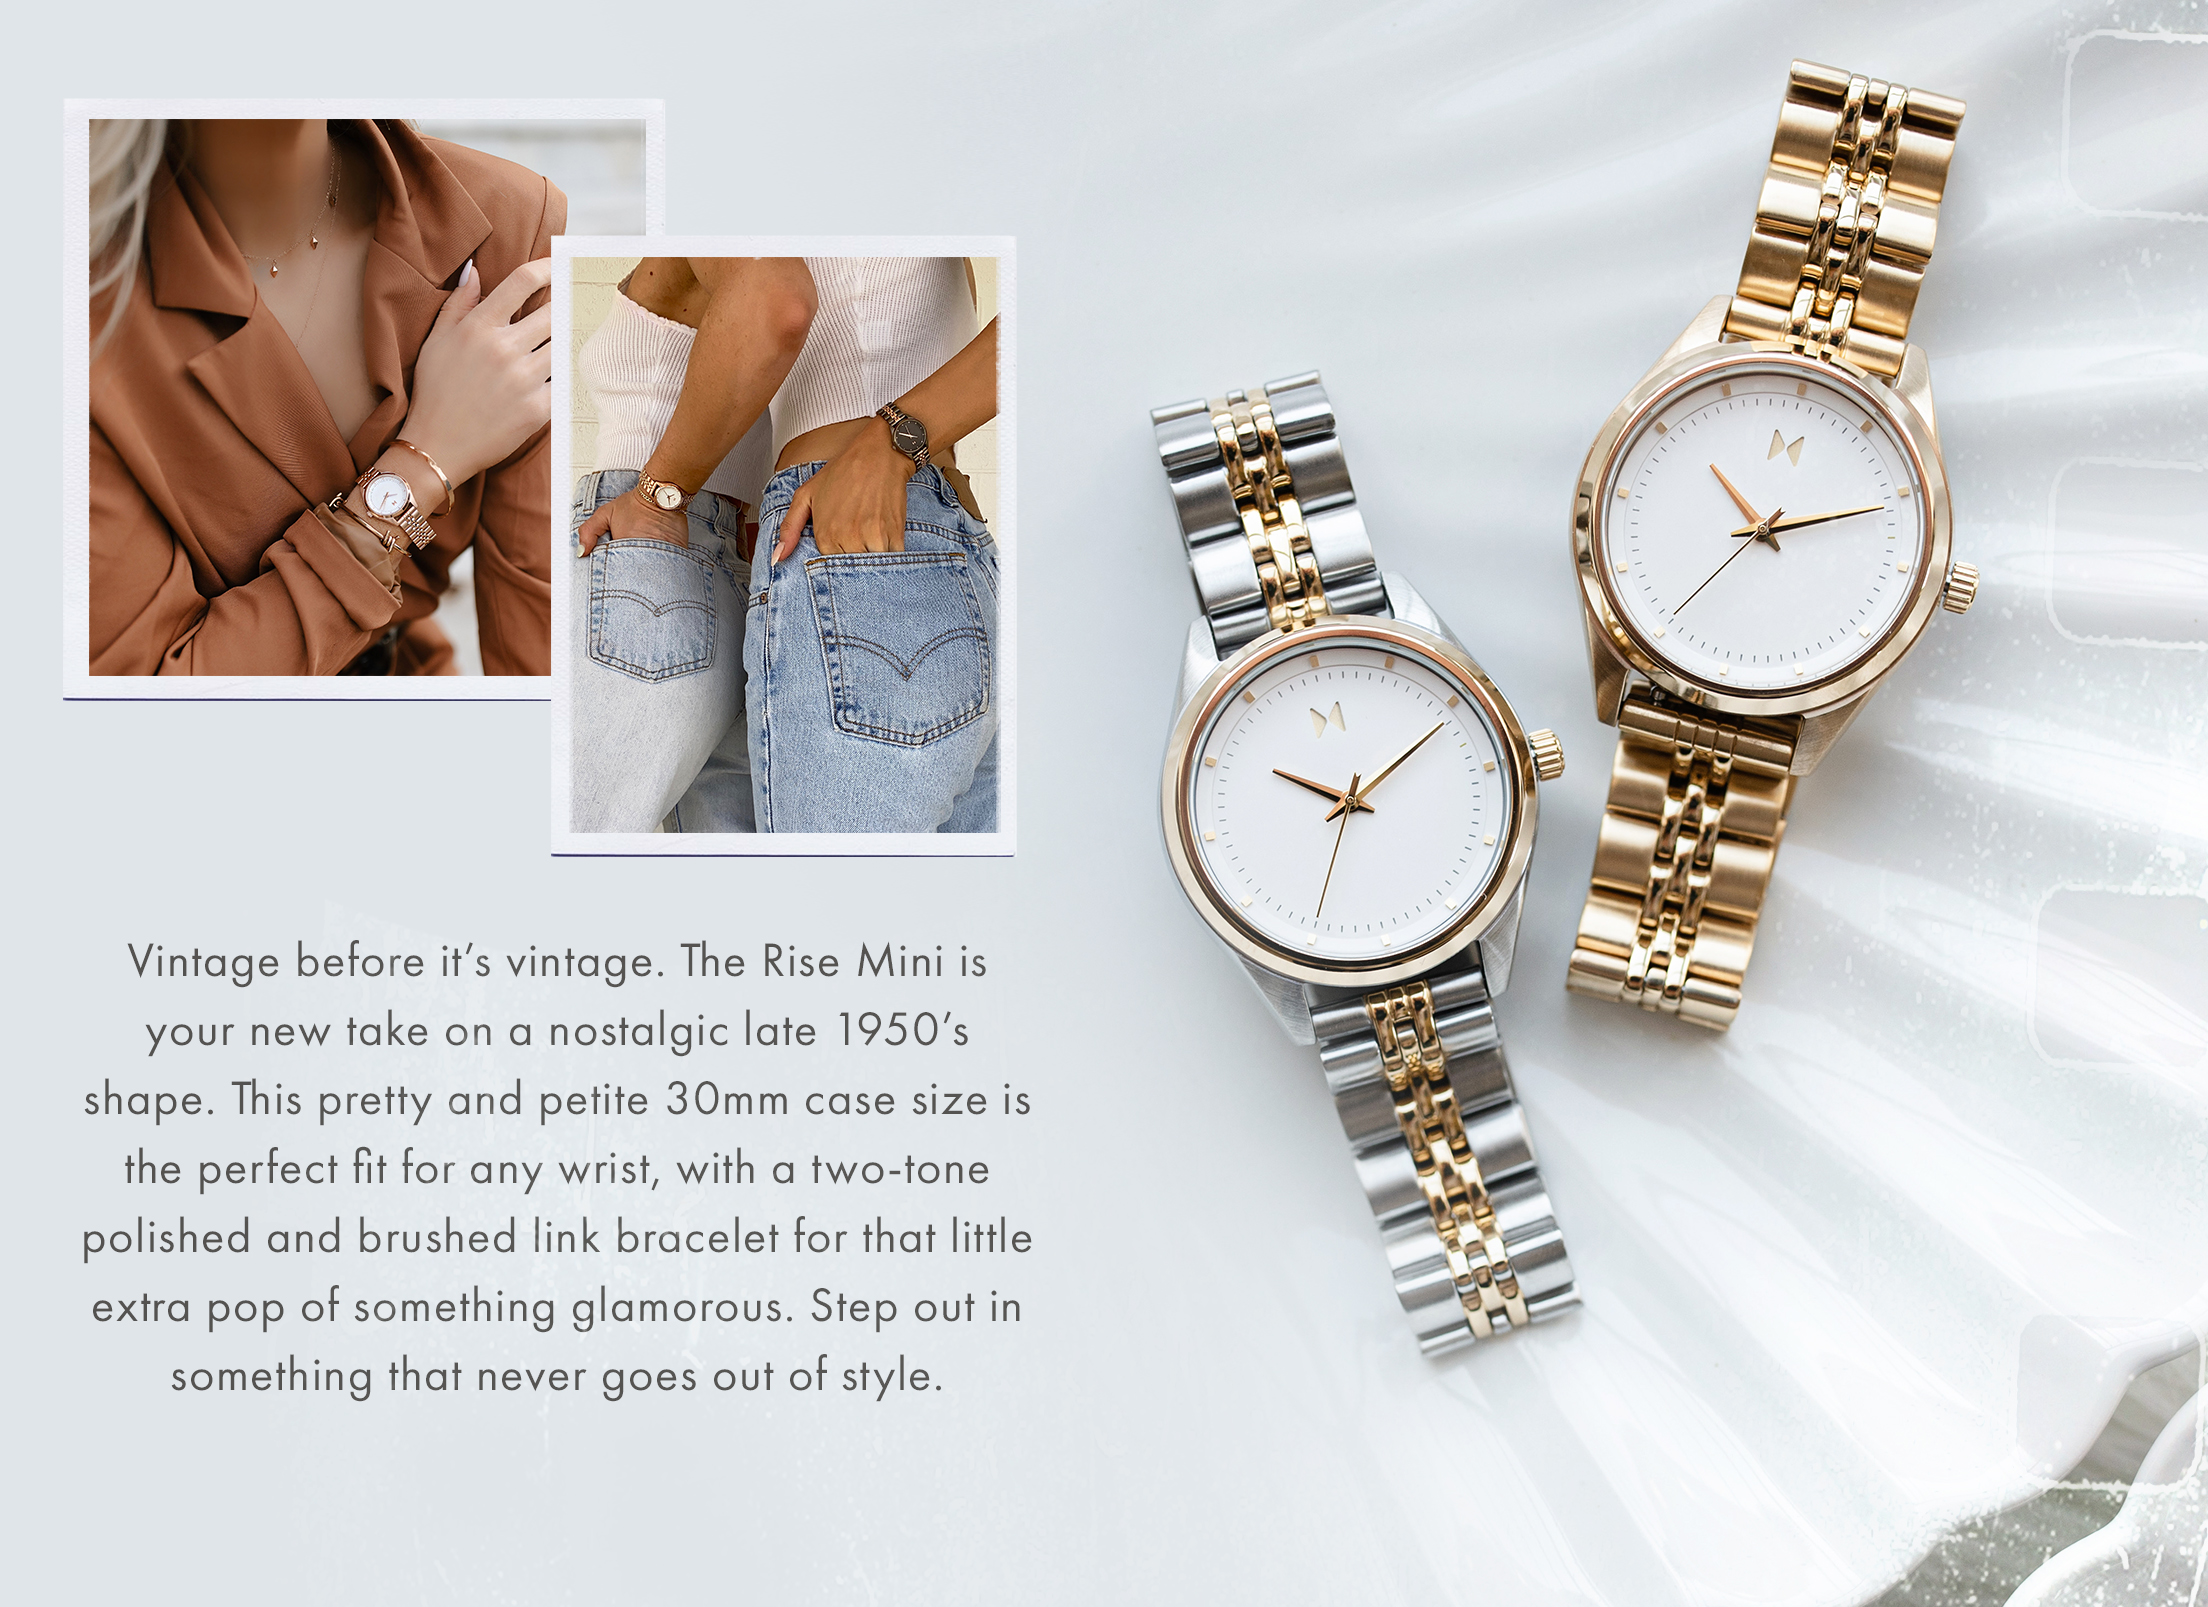 Vintage before it's vintage. The Rise Mini is your new take on a nostalgic late 1950's shape. This pretty and petite 30mm case size is the perfect fit for any wrist, with a two-tone polished and brushed link bracelet for that little extra pop of something glamorous. Step out in something that never goes out of style.